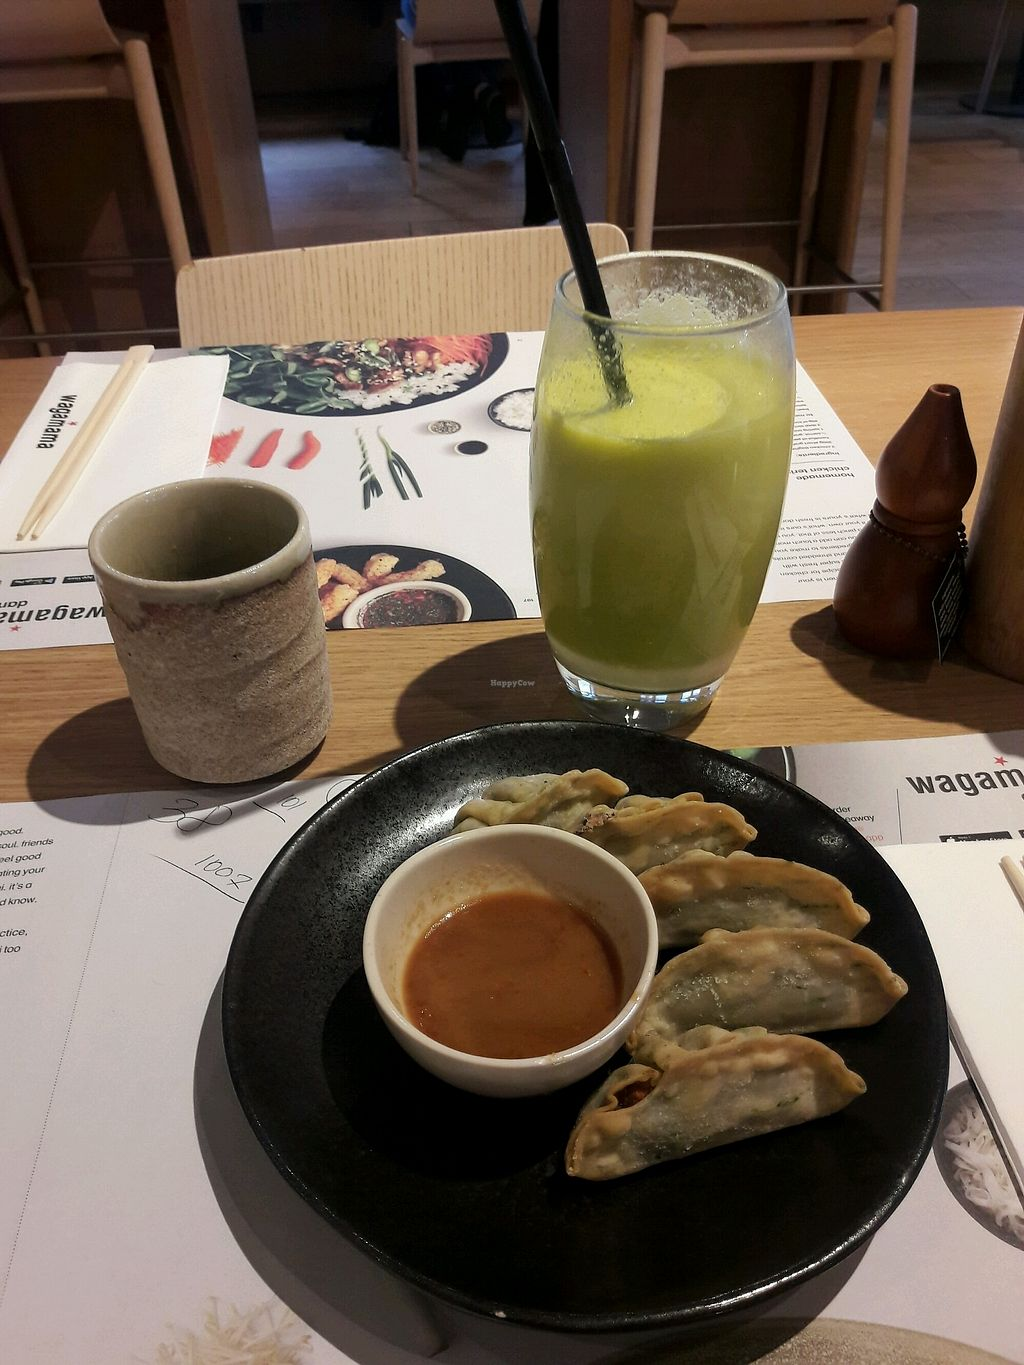 """Photo of Wagamama  by <a href=""""/members/profile/piffelina"""">piffelina</a> <br/>Dumplings, fresh juice and green tea <br/> December 3, 2017  - <a href='/contact/abuse/image/69590/331682'>Report</a>"""